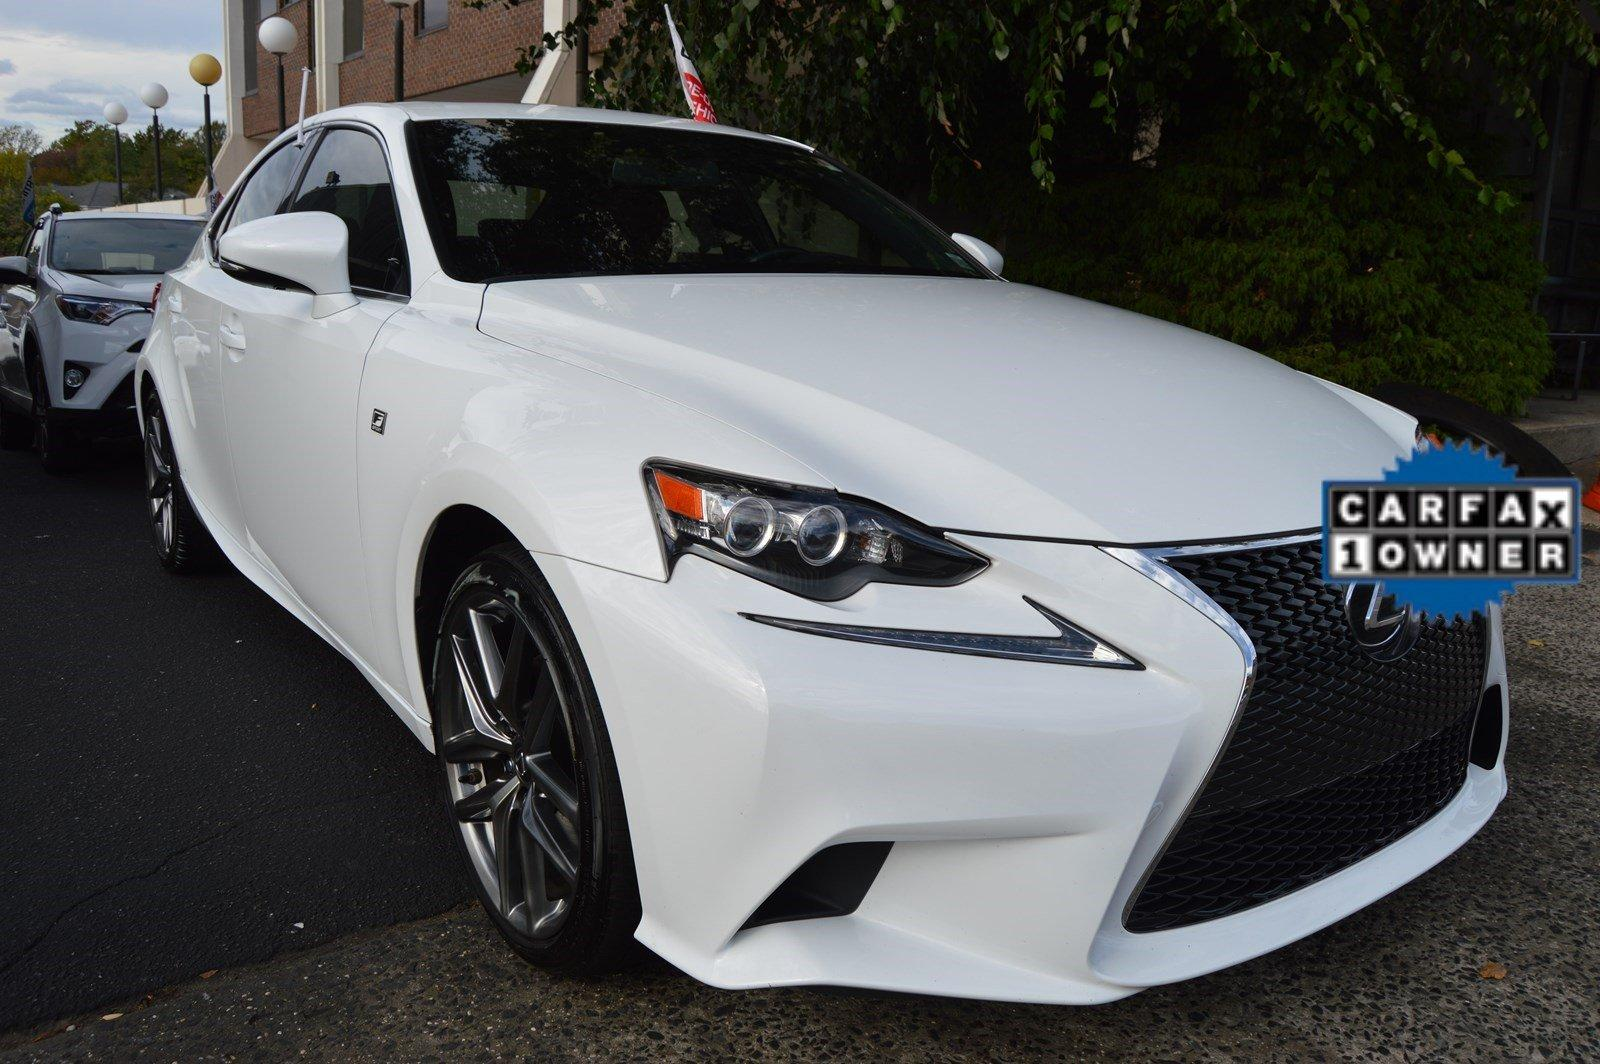 Used Lexus For Sale In Ct >> Lexus Is250 Interior 2015 | www.pixshark.com - Images Galleries With A Bite!